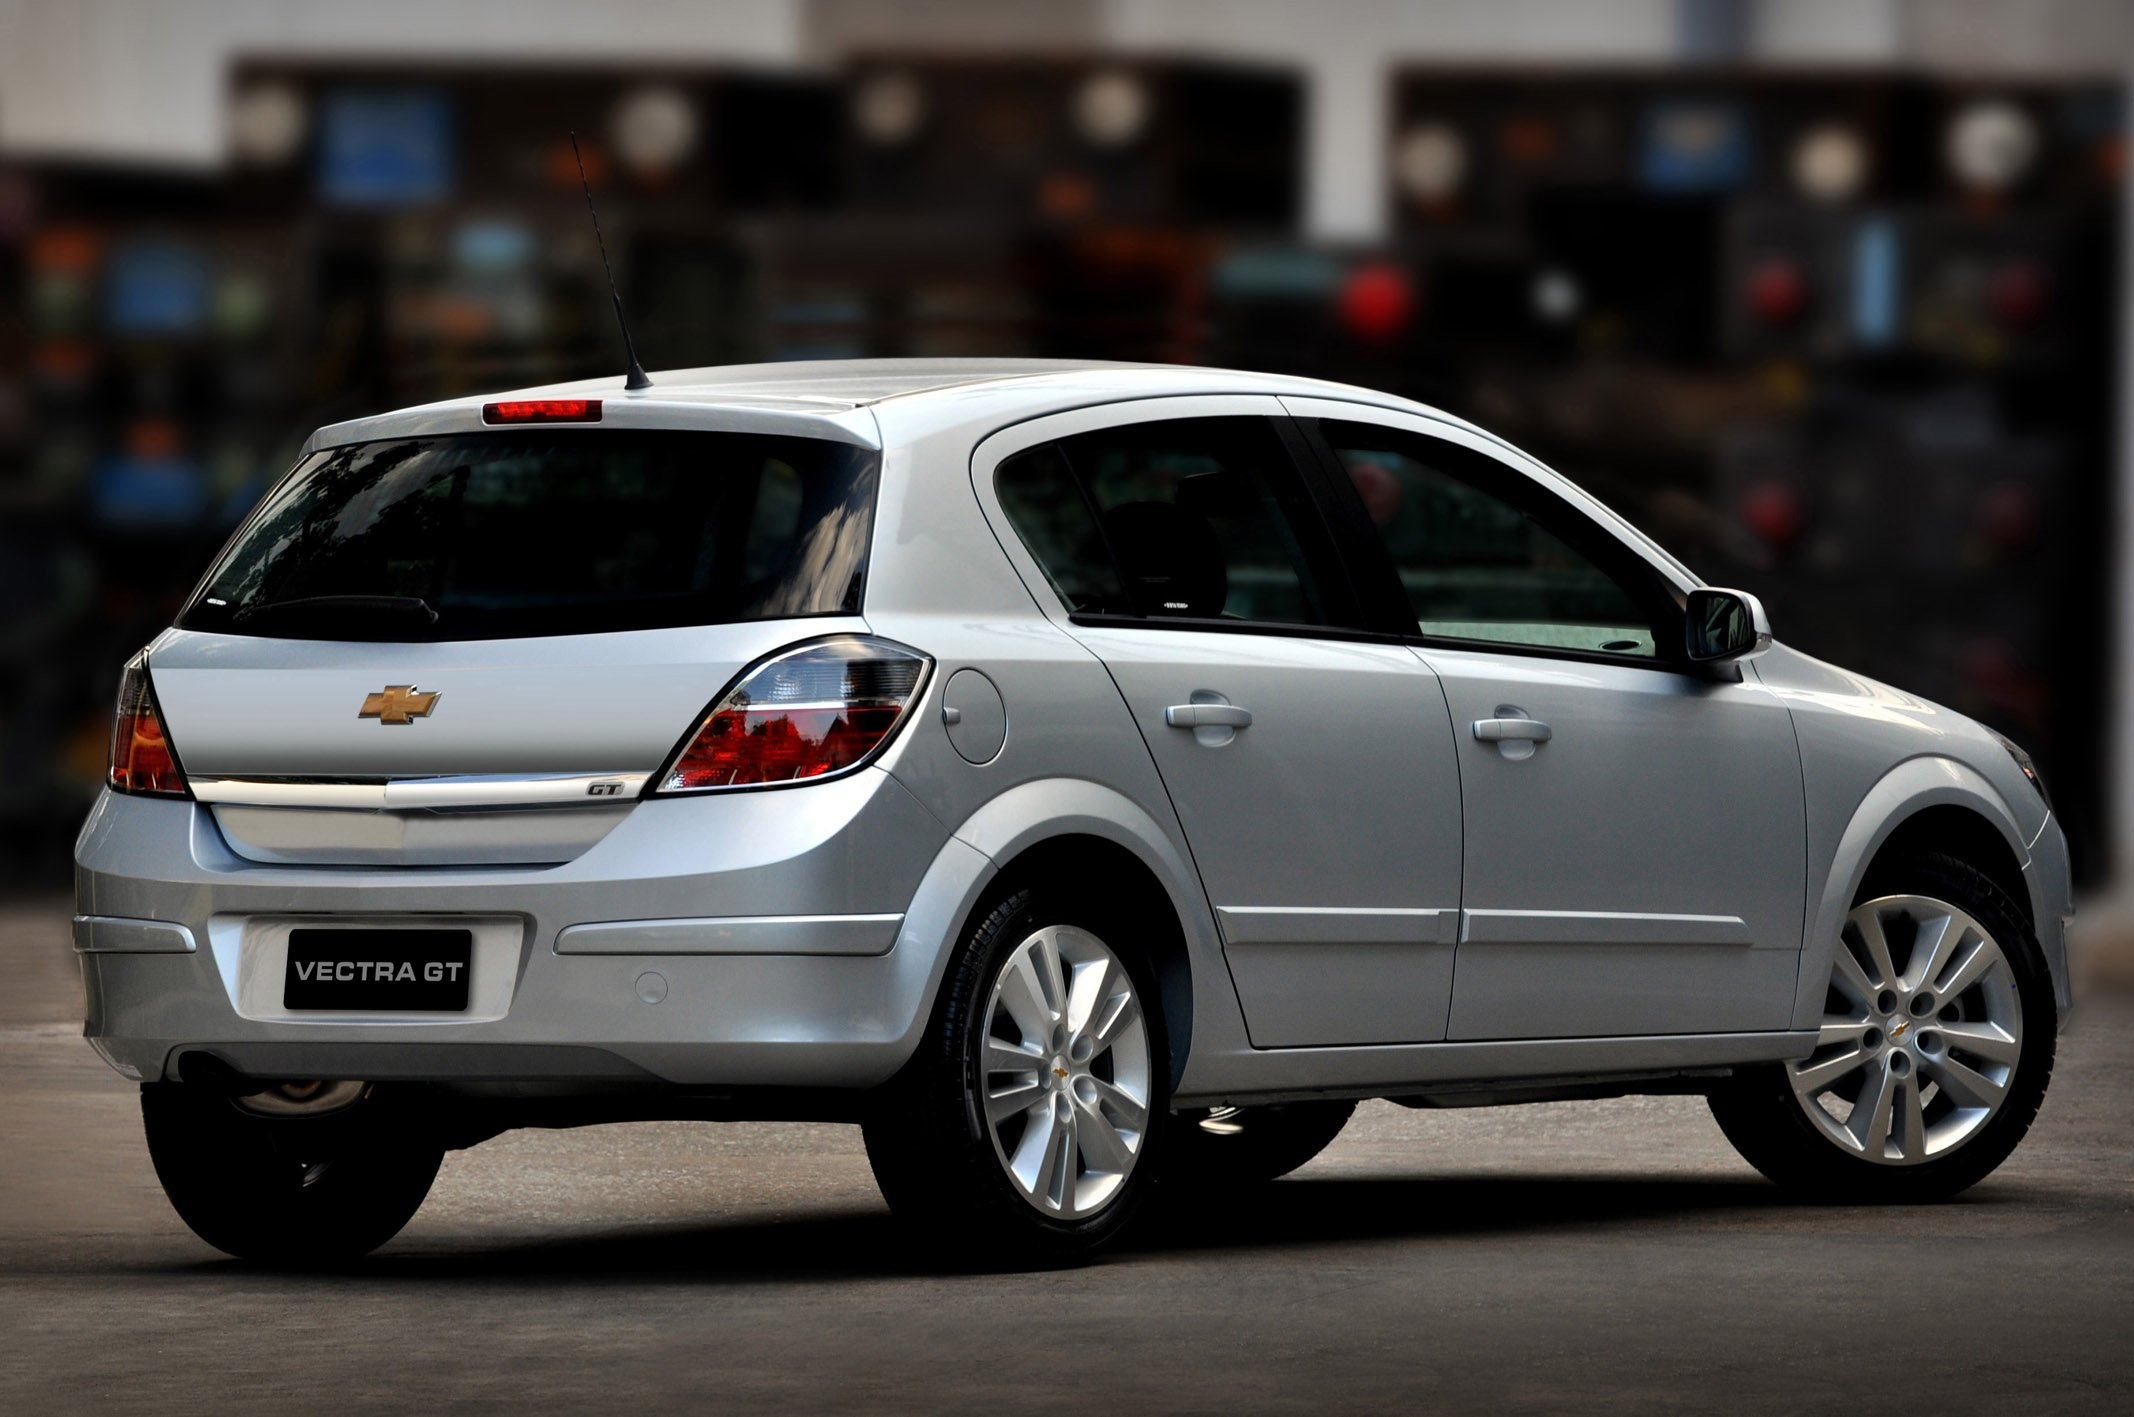 Pictures of chevrolet vectra #7